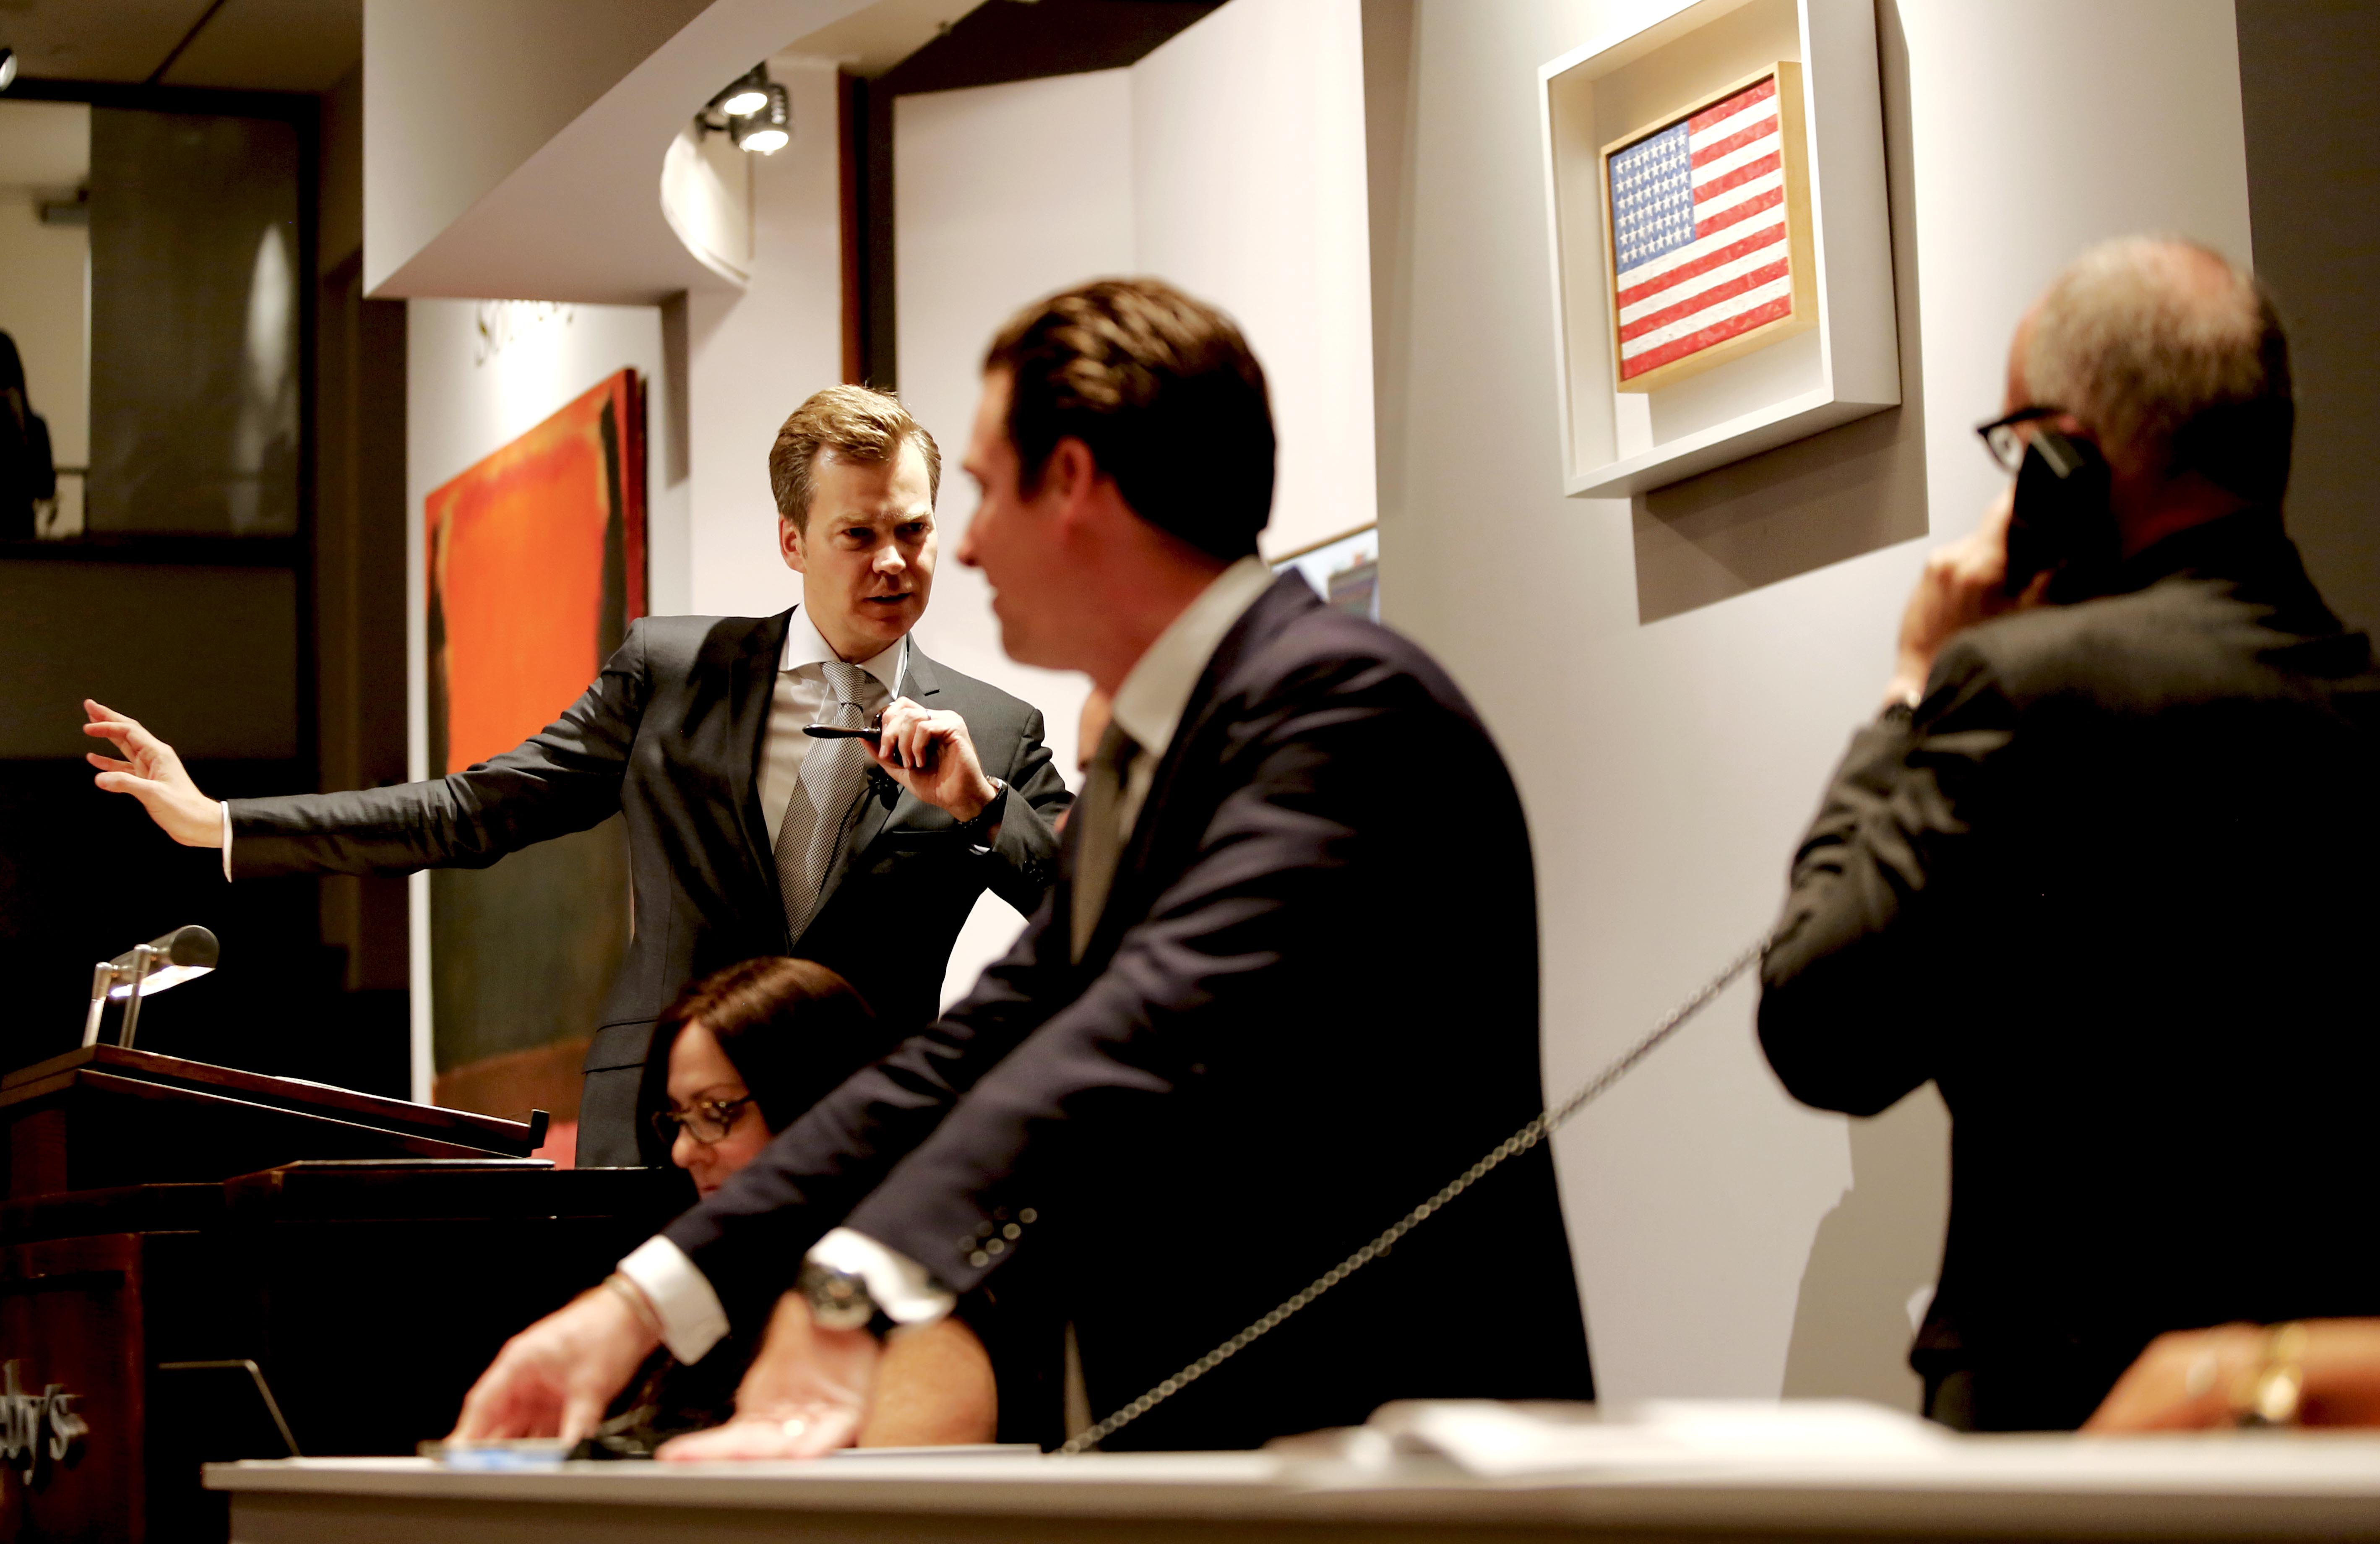 Oliver Barker coaxed bidders with charm at Sotheby's November 11 Contemporary Art Evening Sale. (Photo courtesy Sotheby's)